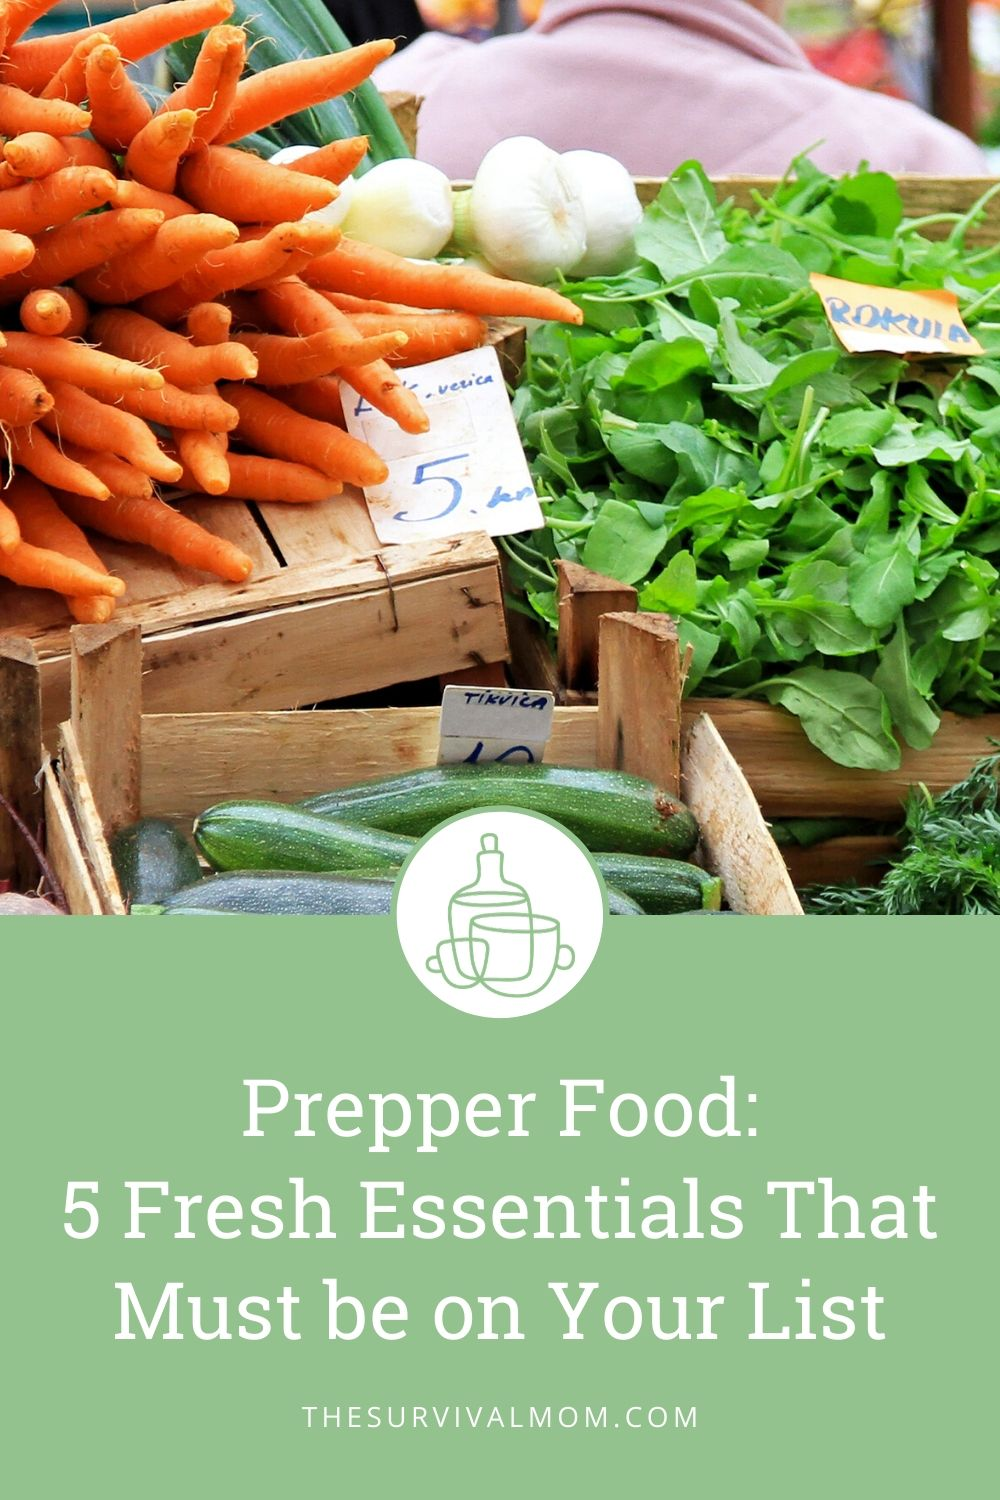 Prepper Food 5 Fresh Essentials That Must be on Your List via The Survival Mom